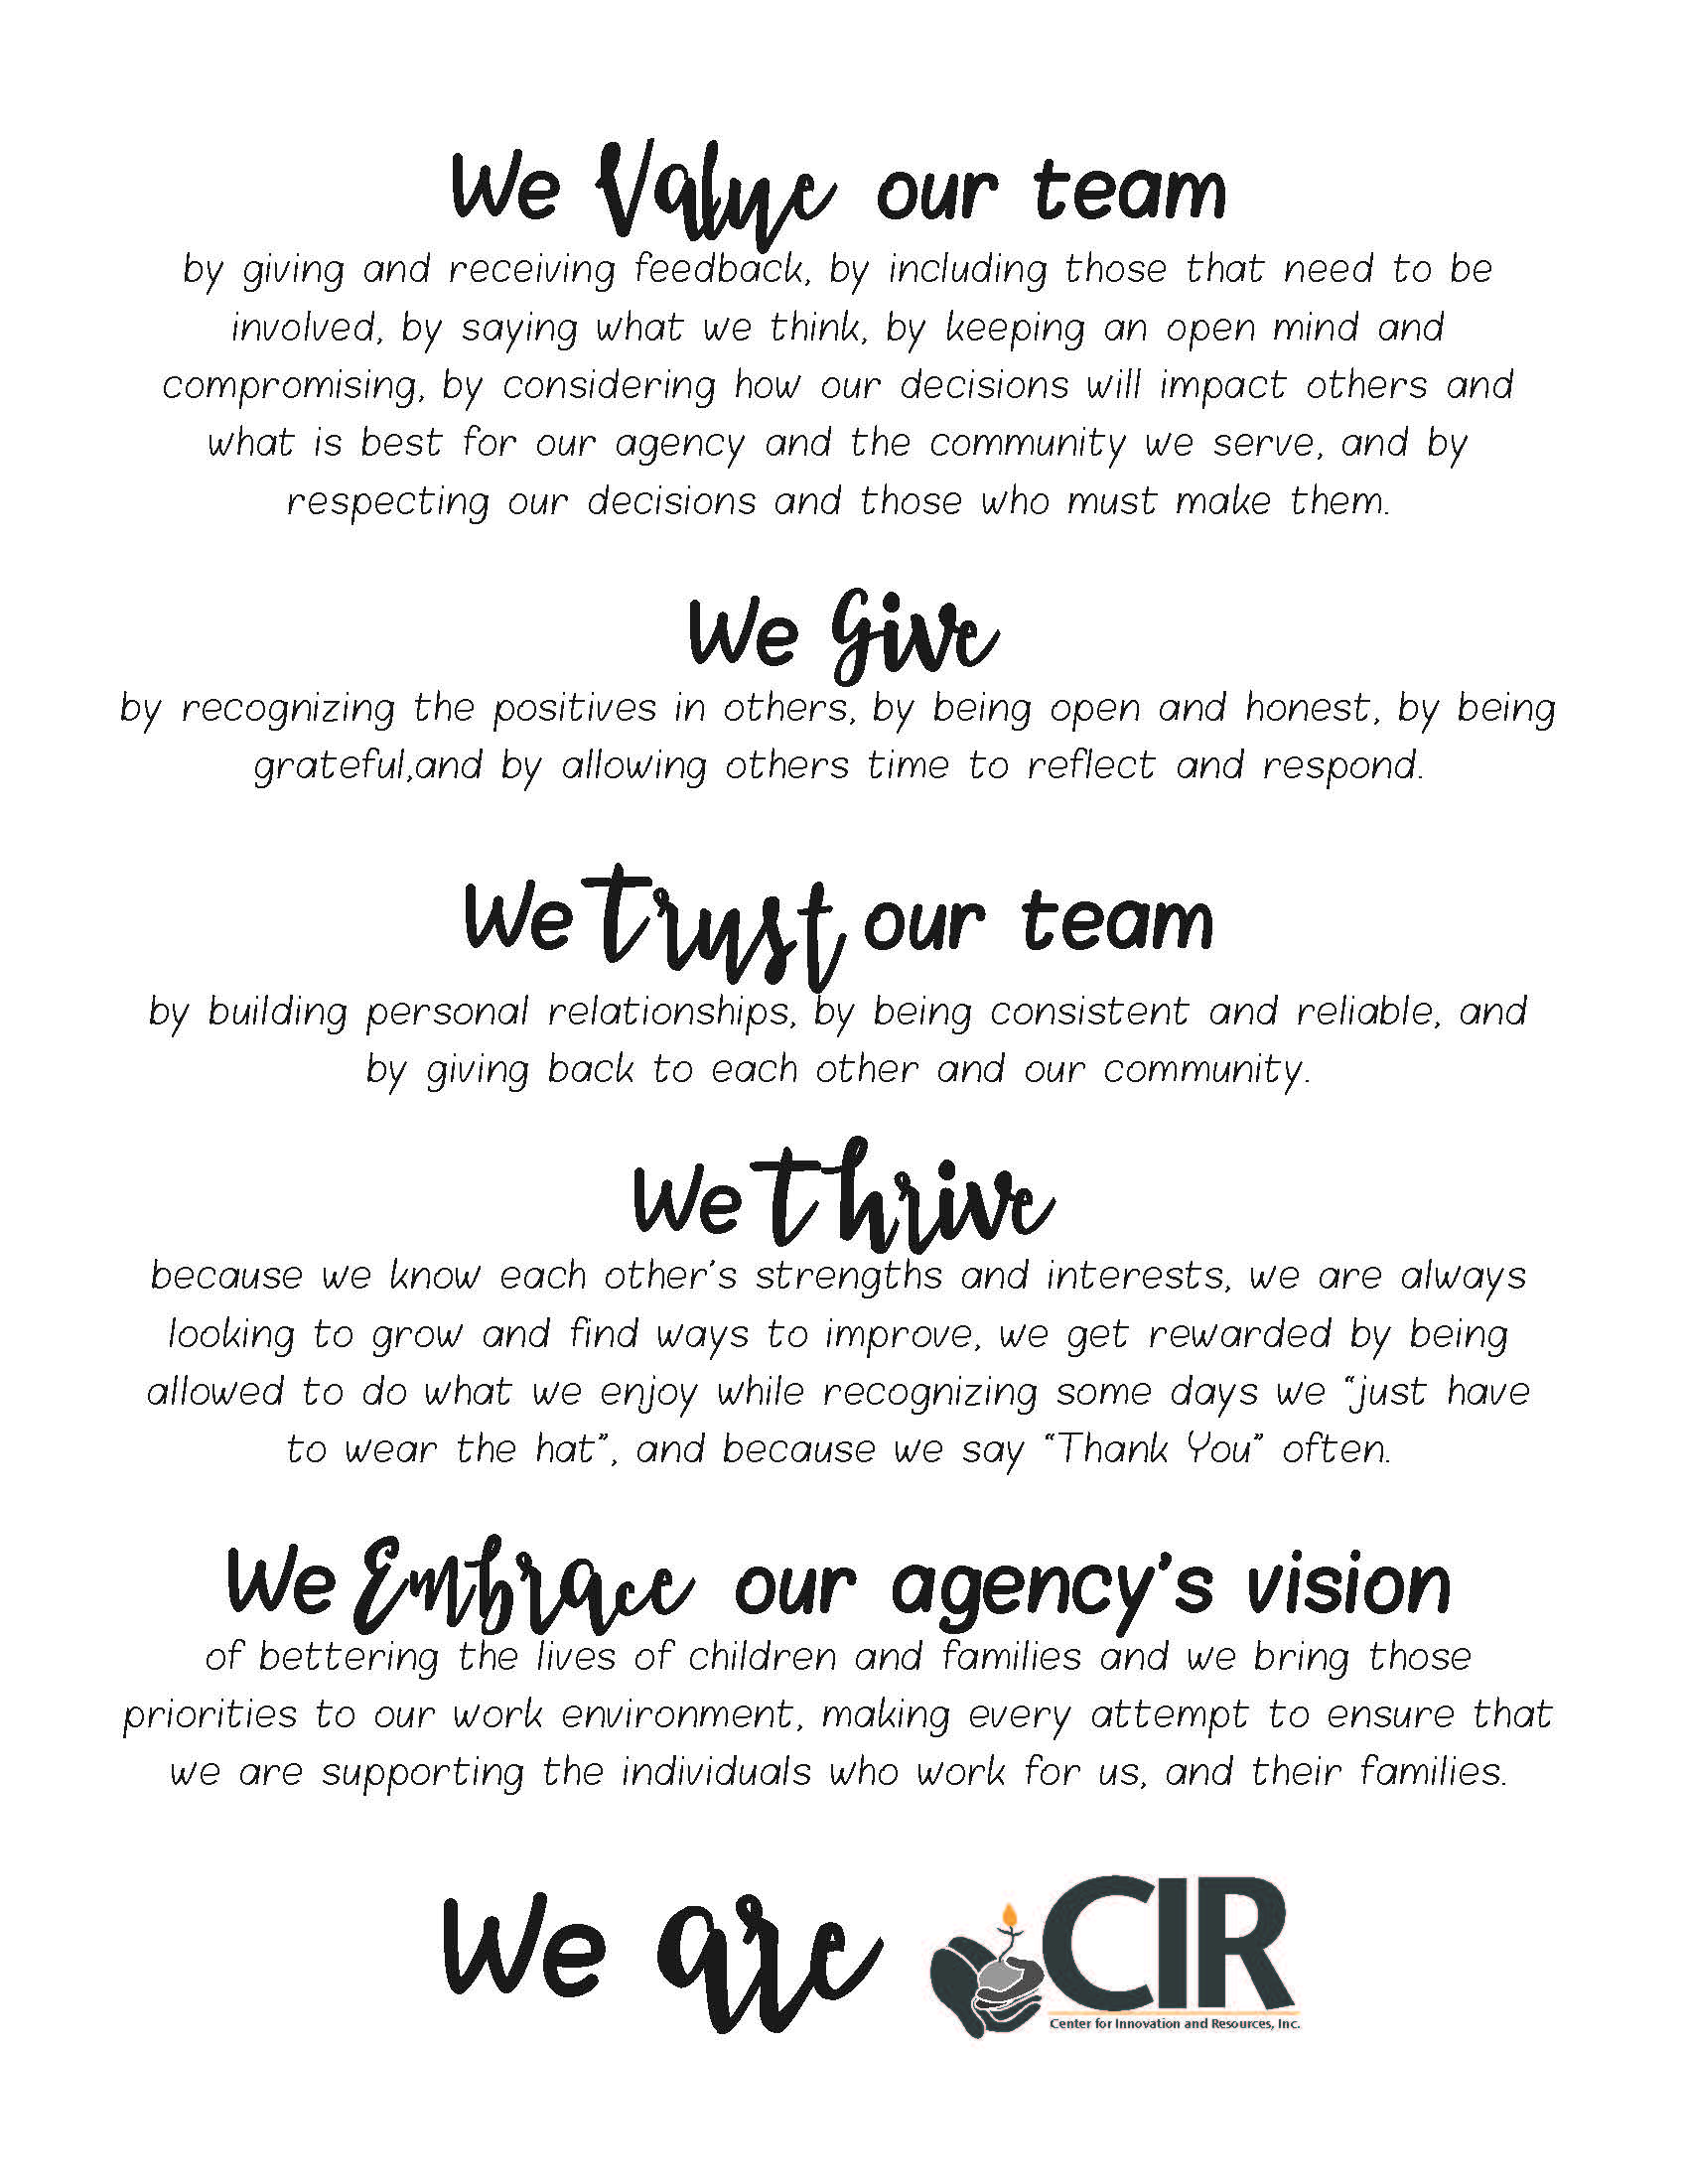 Description of the CIR team and our vision